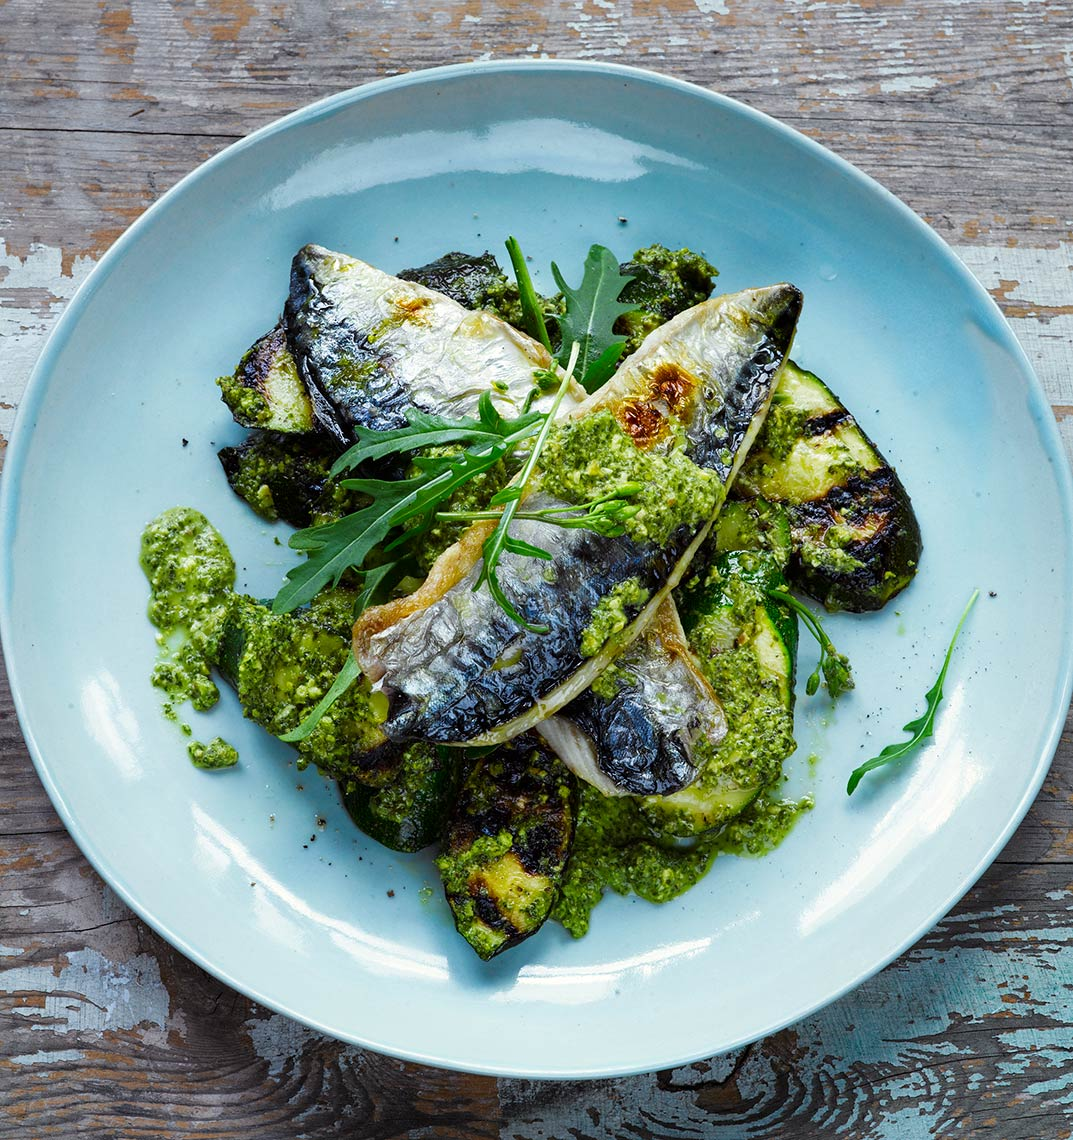 Grilled courgette and mackeral | Colin Campbell - Food Photographer